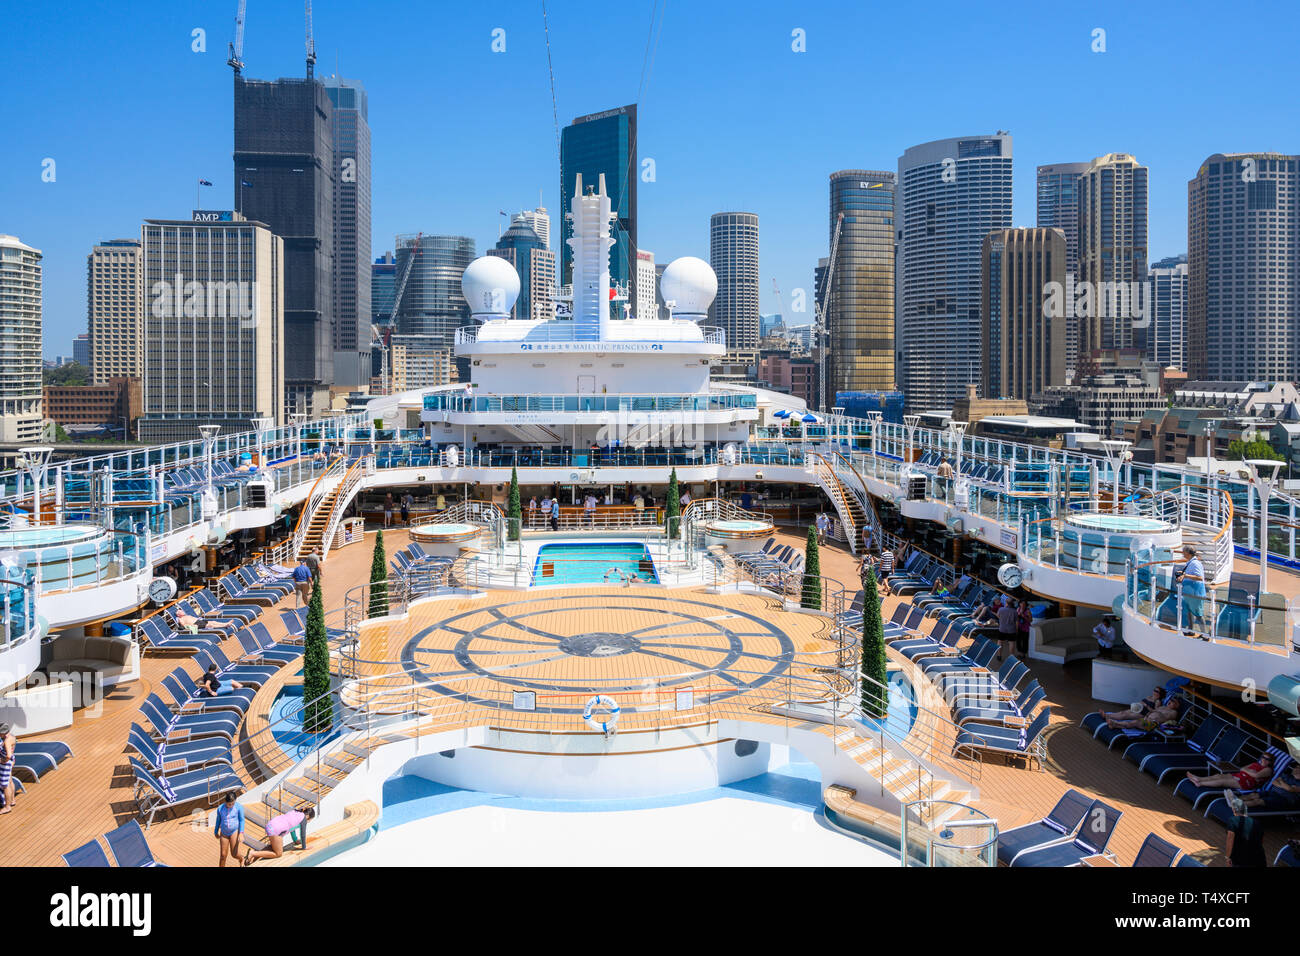 Princess Cruises cruise ship, Majestic Princess, is berthed at the Overseas Passenger Terminal, Sydney Harbour, Sydney, New South Wales, Australia. Stock Photo